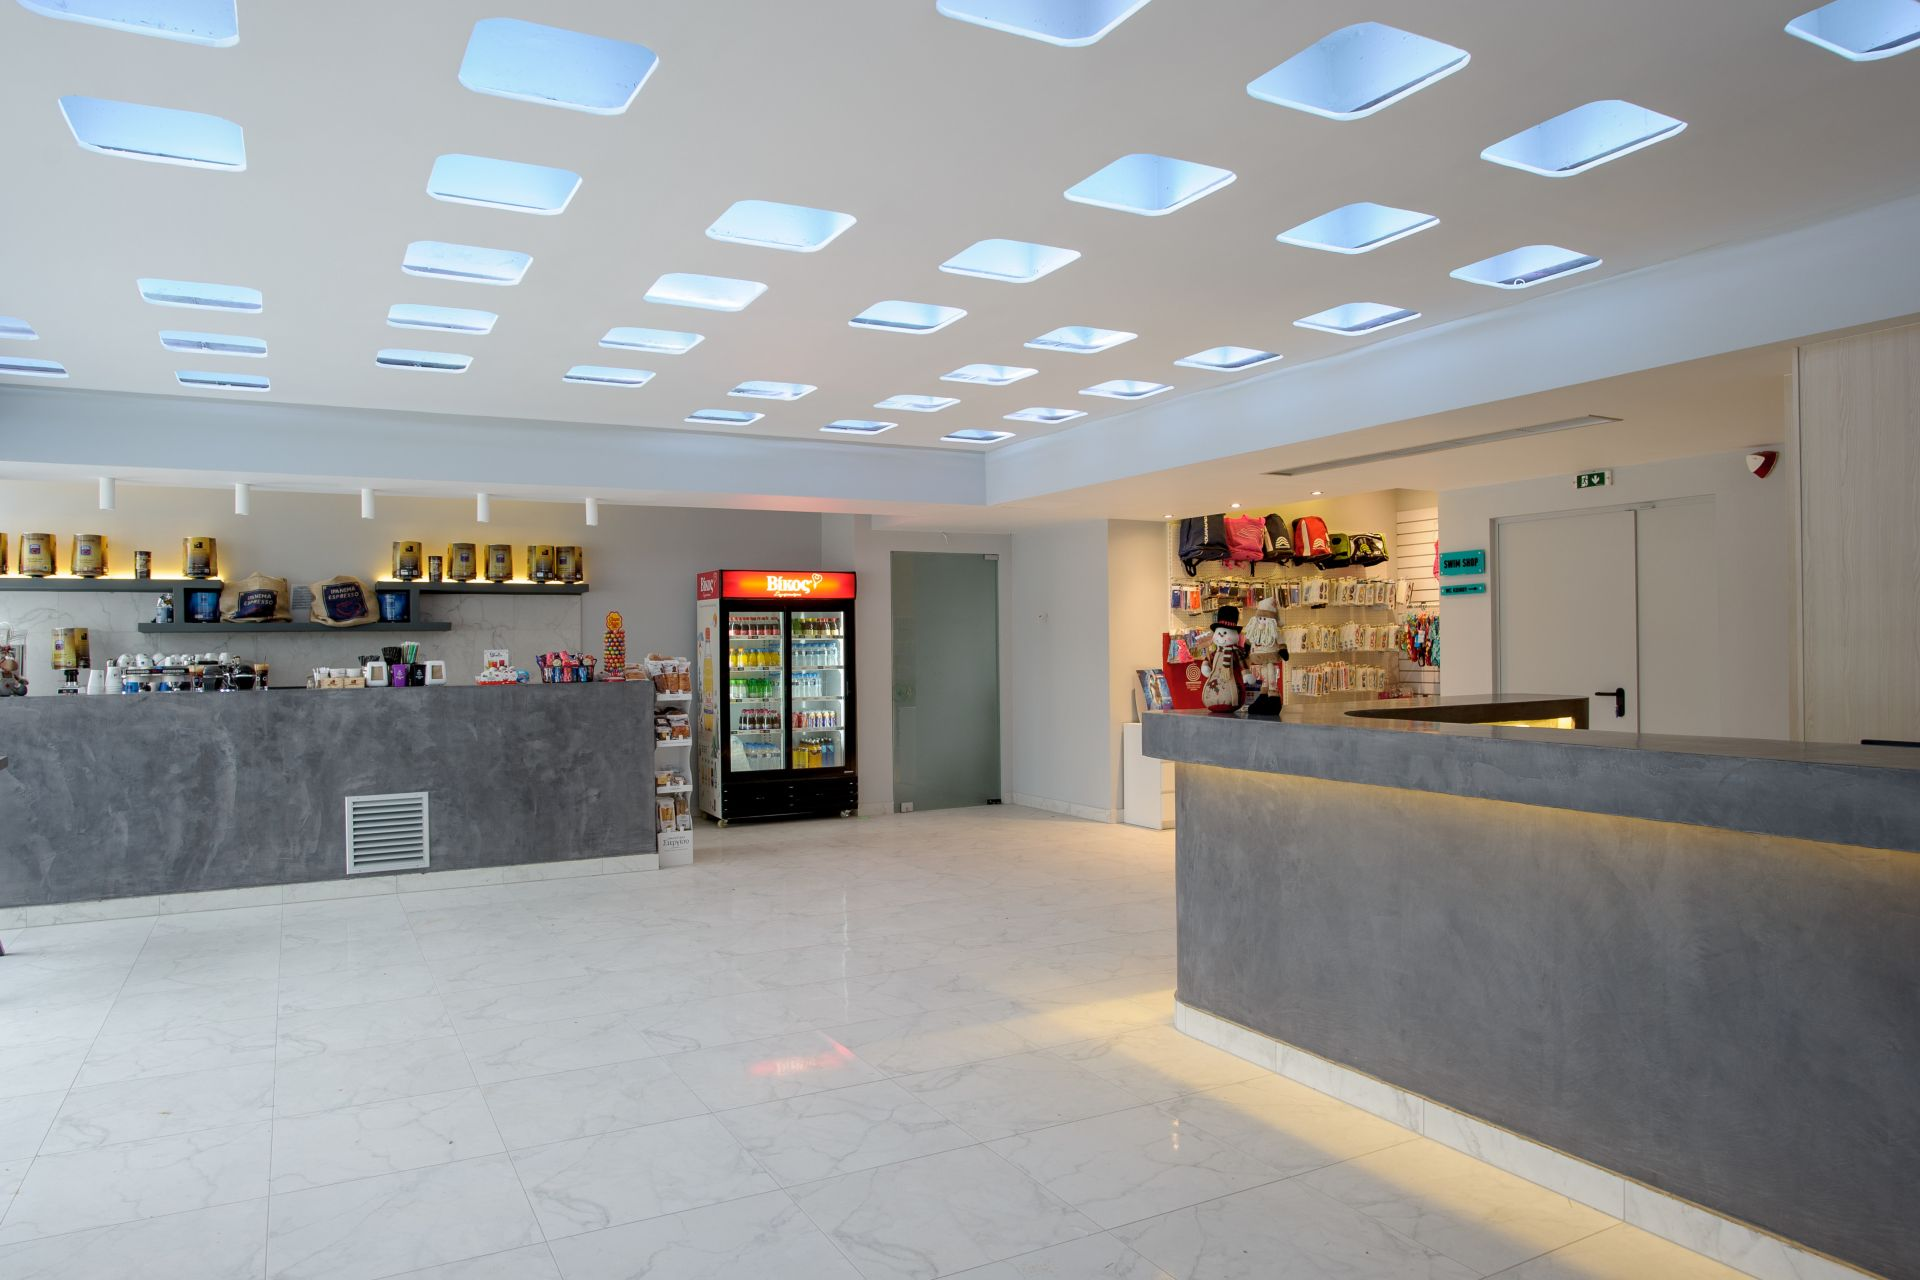 The canteen of the Epirus Sport and Health Center in Ioannina, Greece